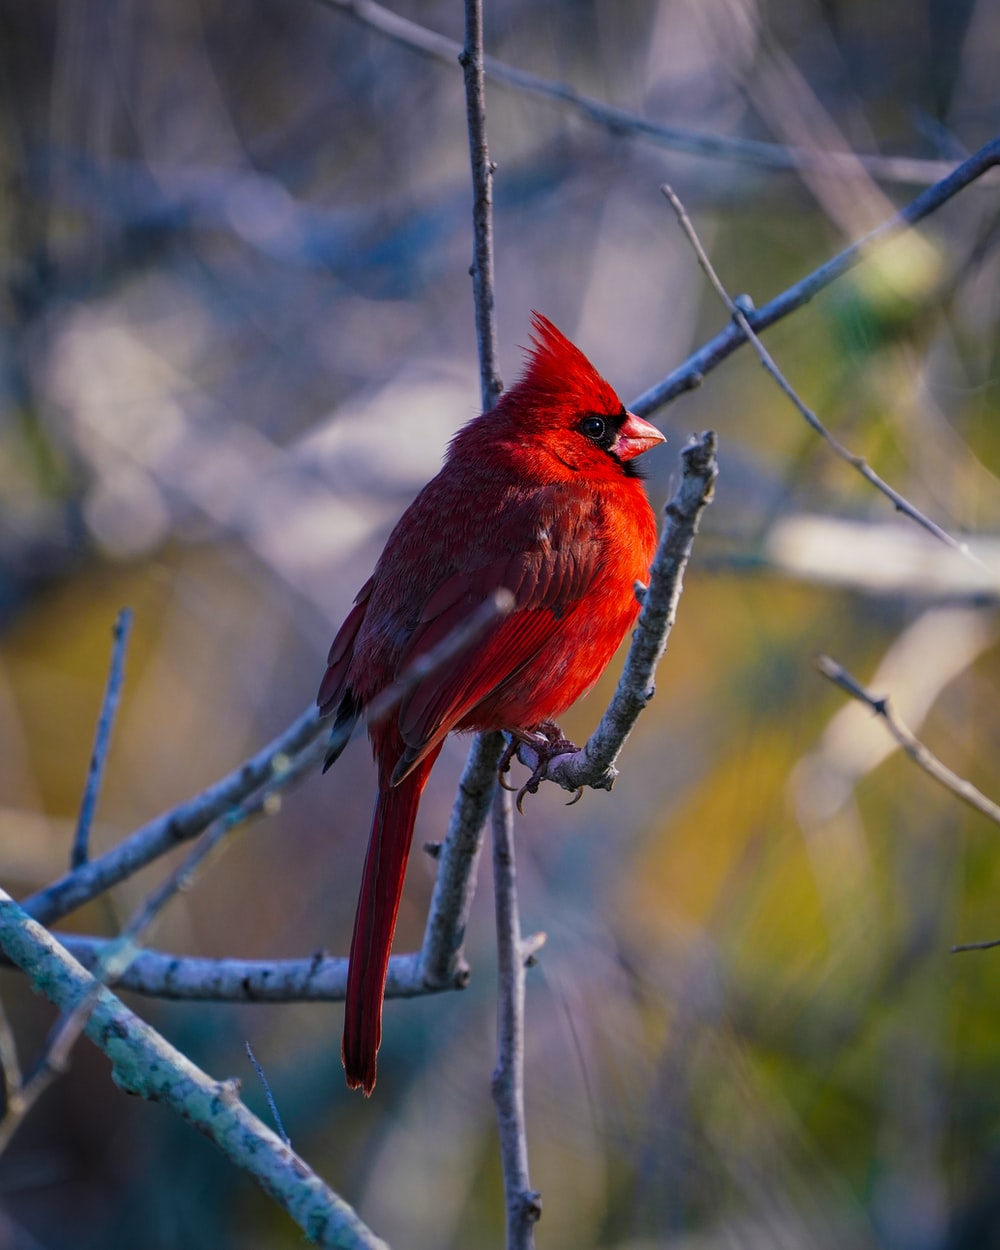 red cardinal bird on gray metal wire during daytime